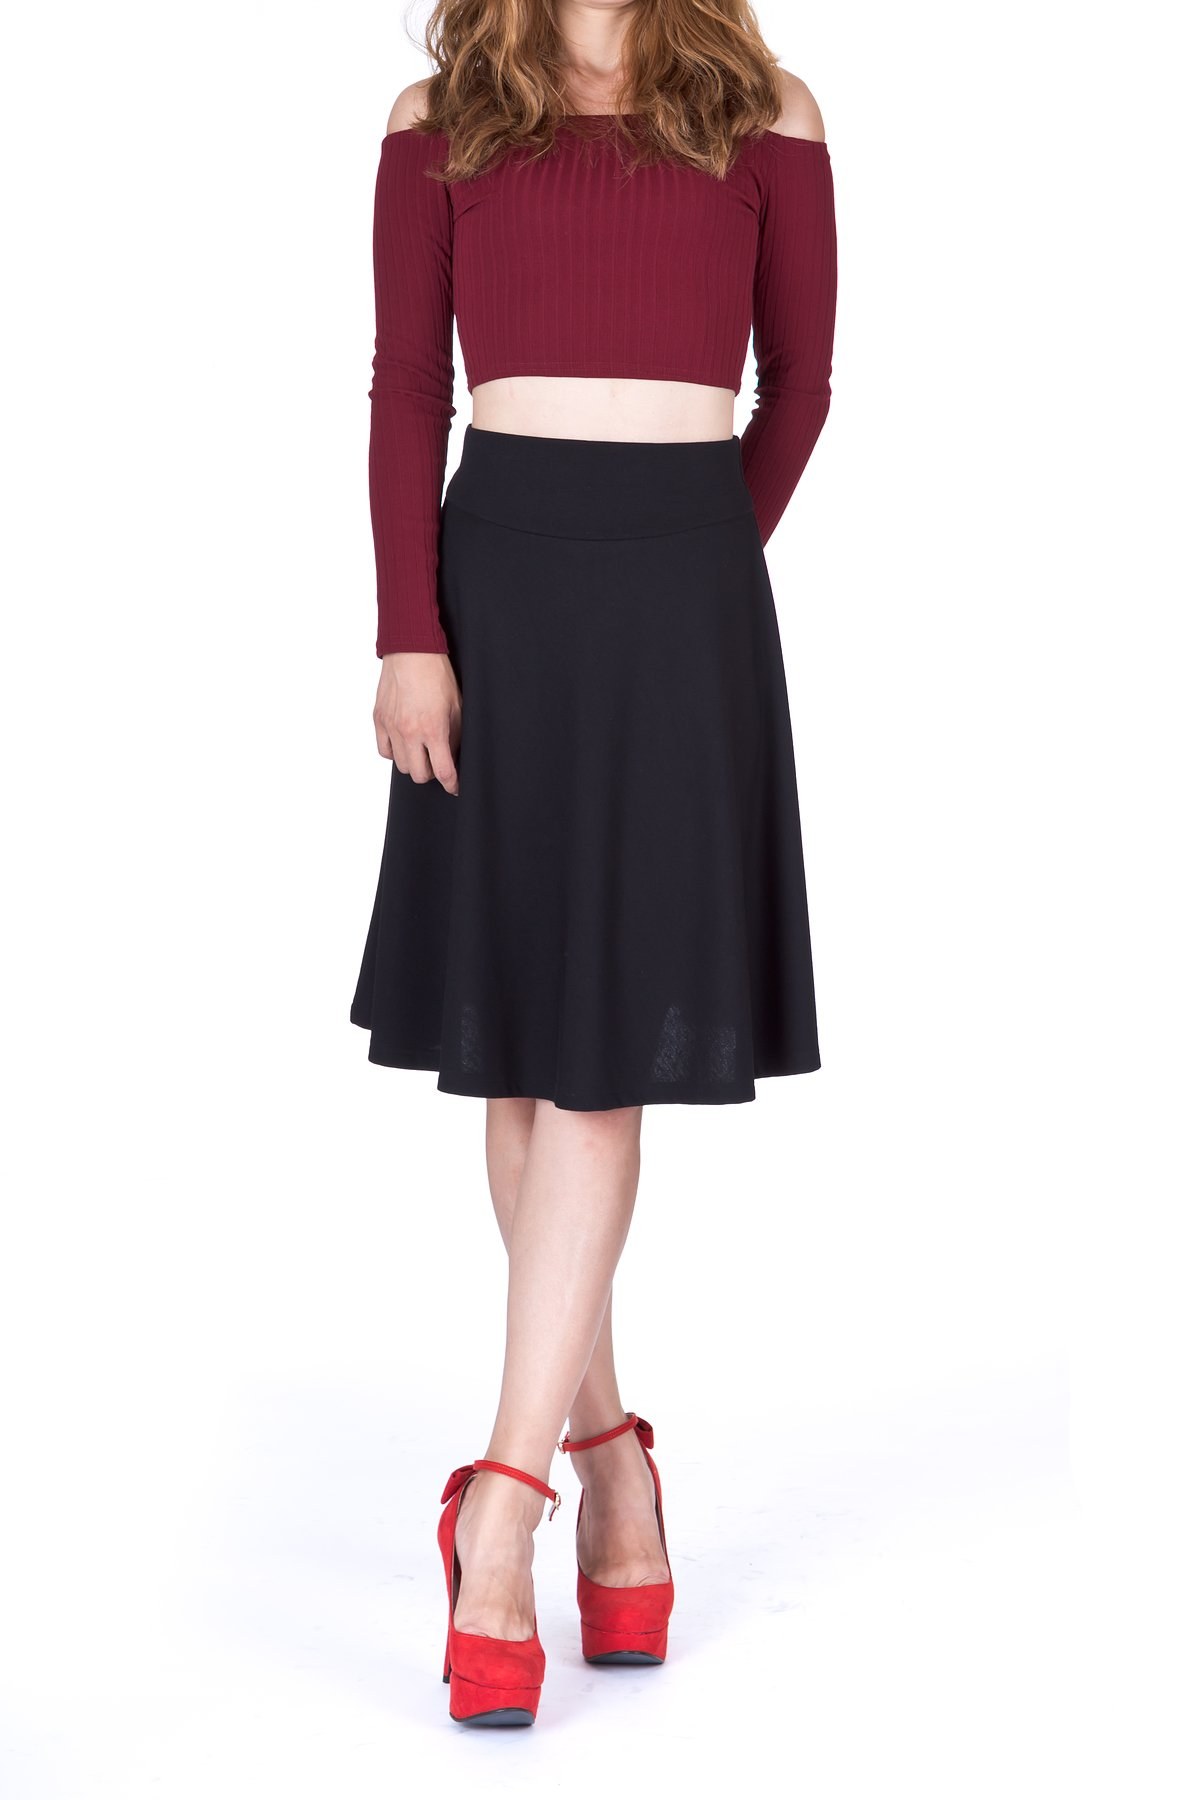 Impeccable Elastic High Waist A-line Full Flared Swing Skater Knee Length Skirt (M, Black) by Dani's Choice (Image #4)